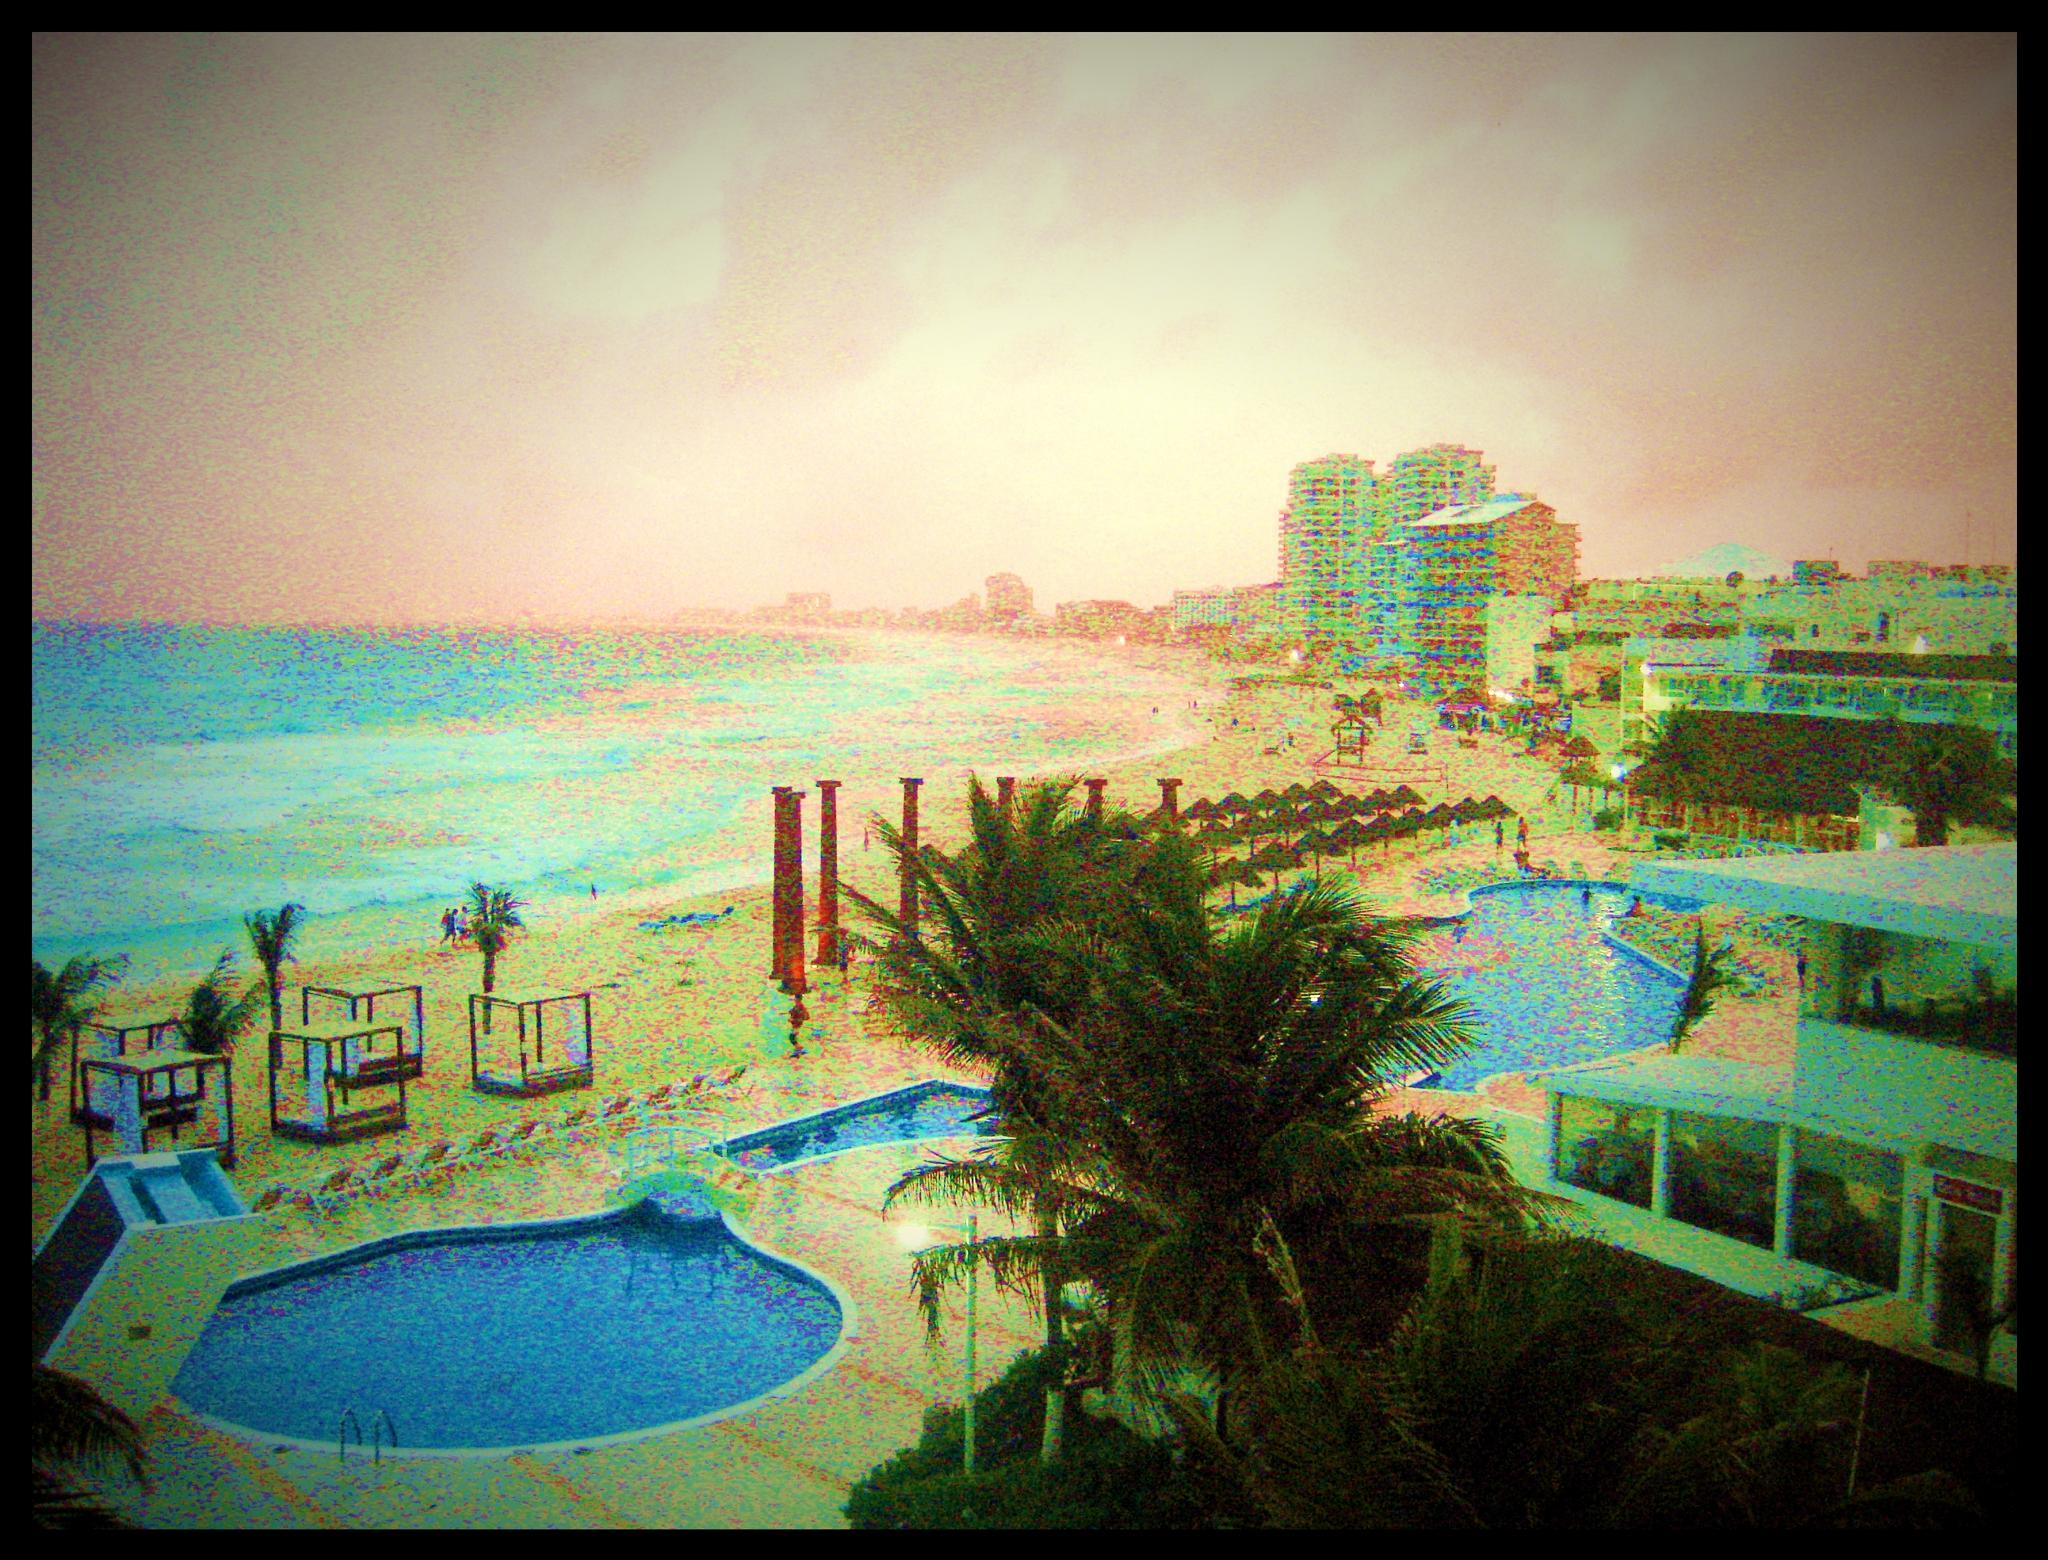 Cancun, Mexico - Old Fashioned Postcard Effect by ronnie429green